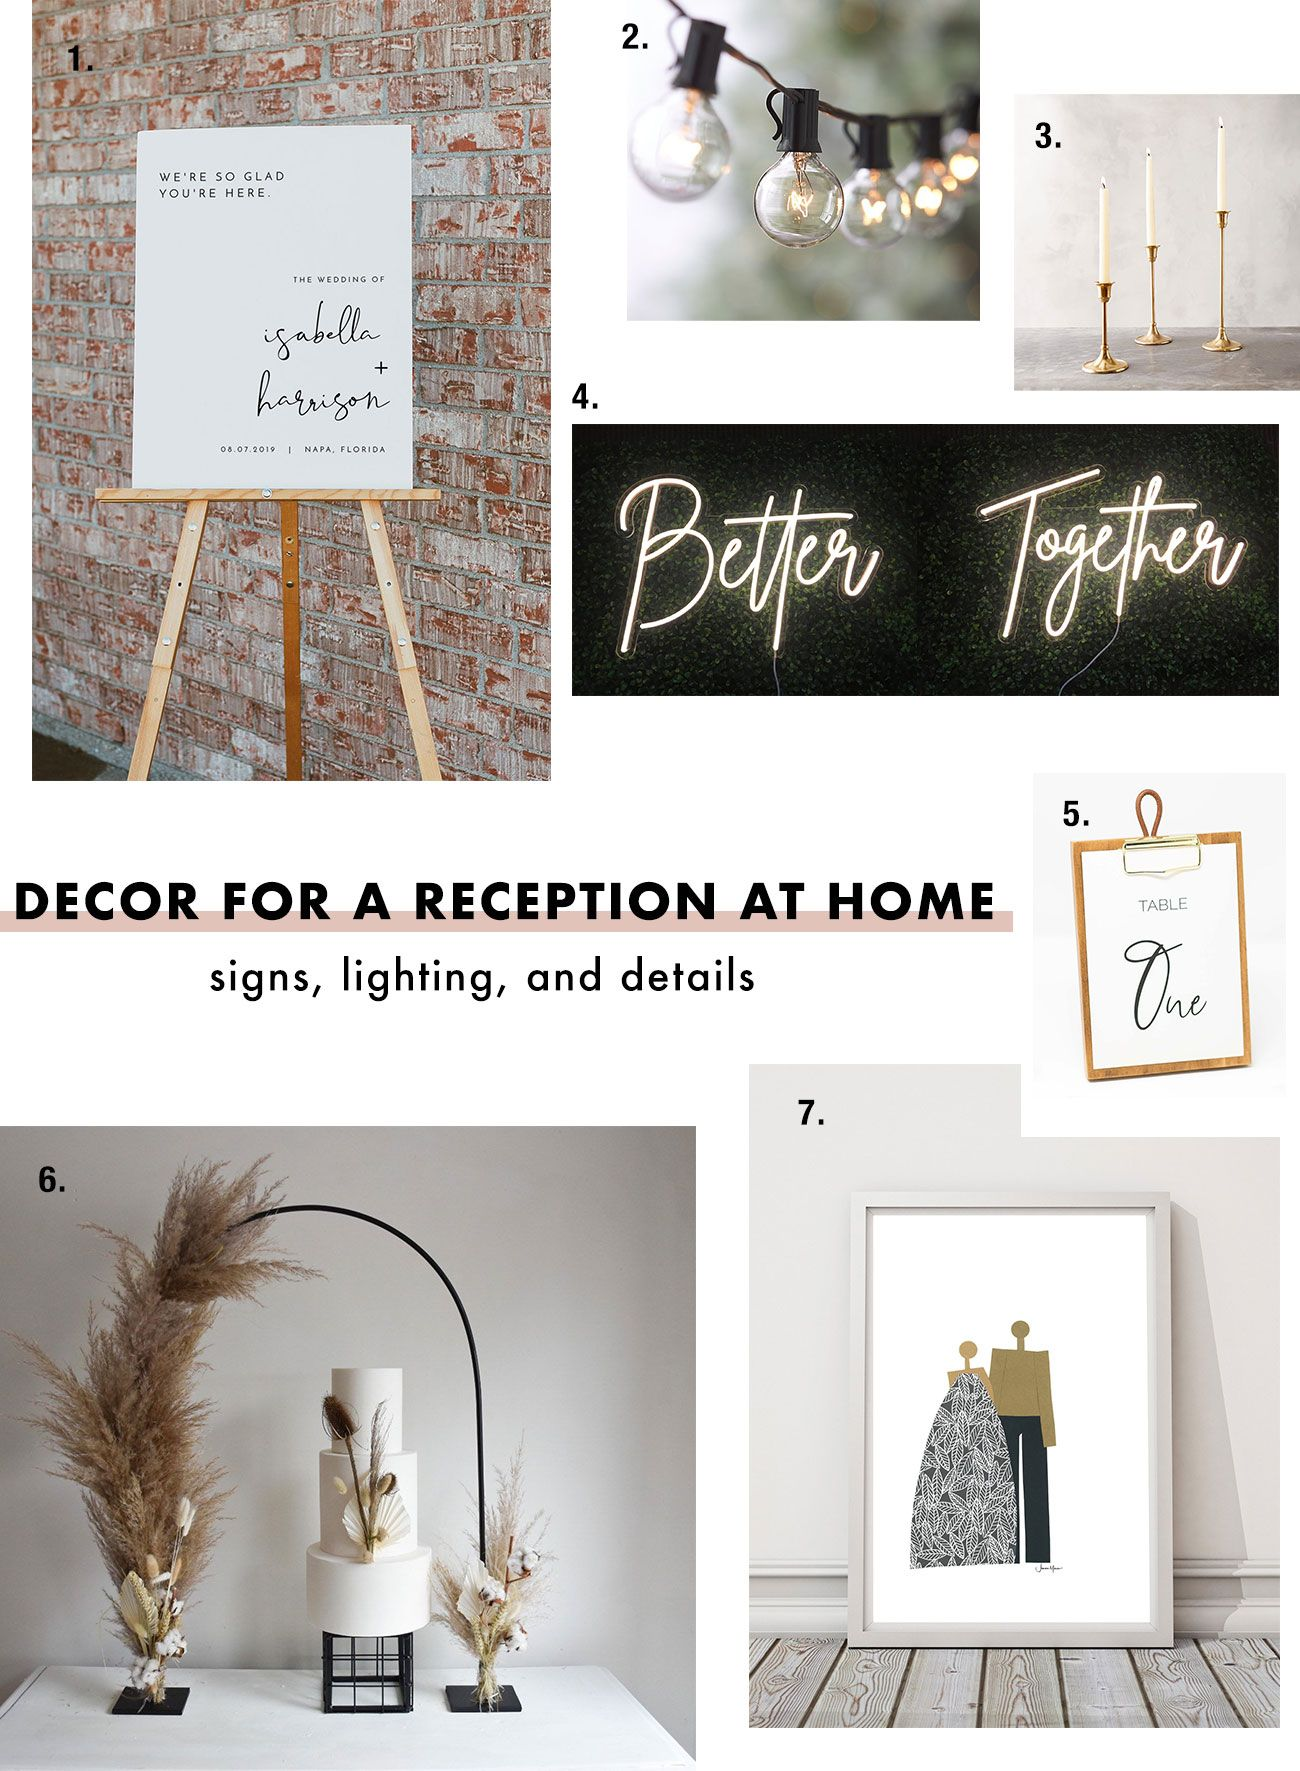 How to Decorate for a Small Wedding at Home Green